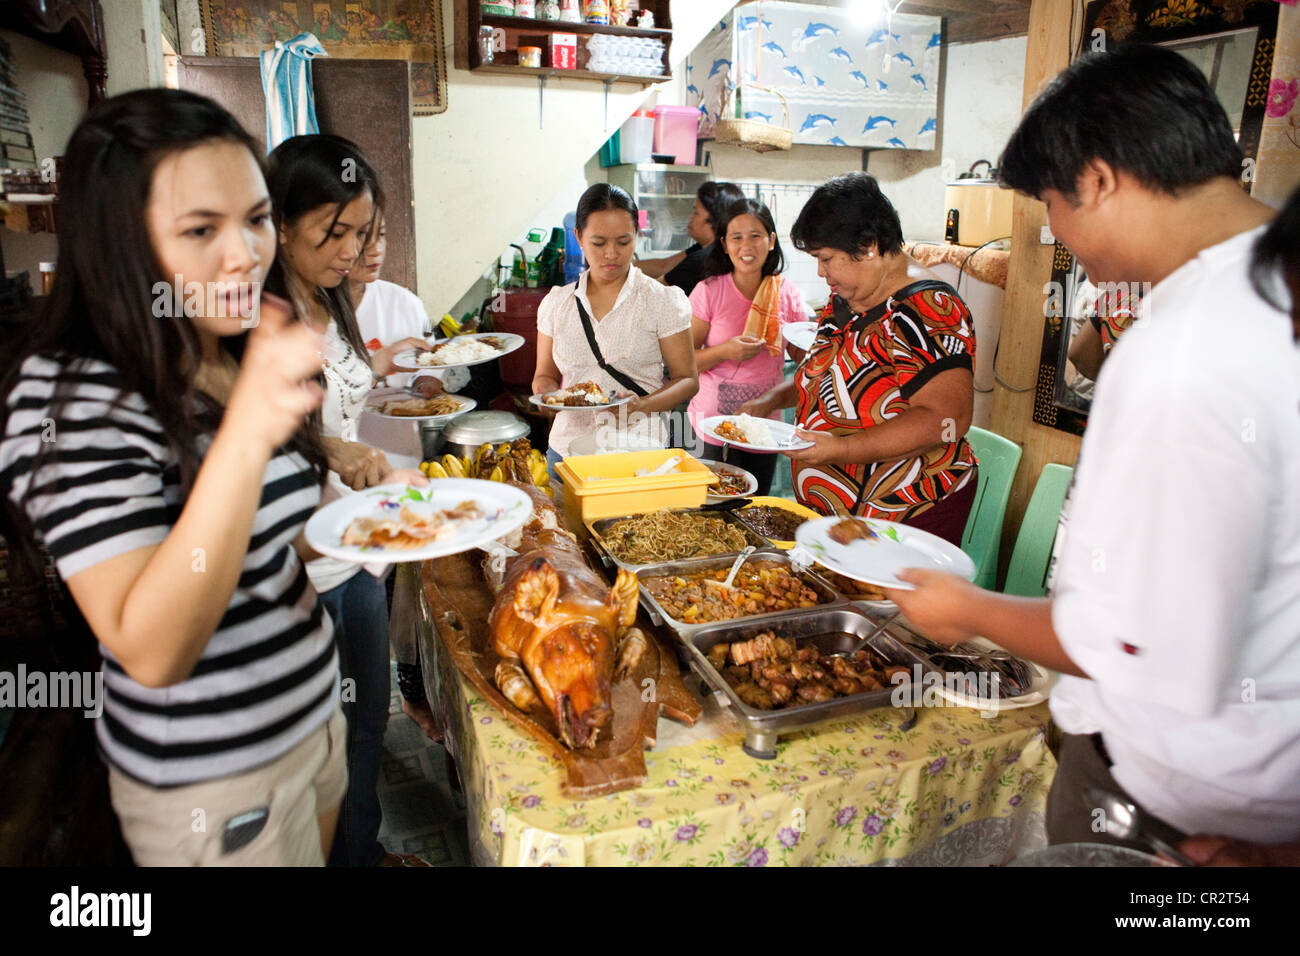 filipino culture and tradition food